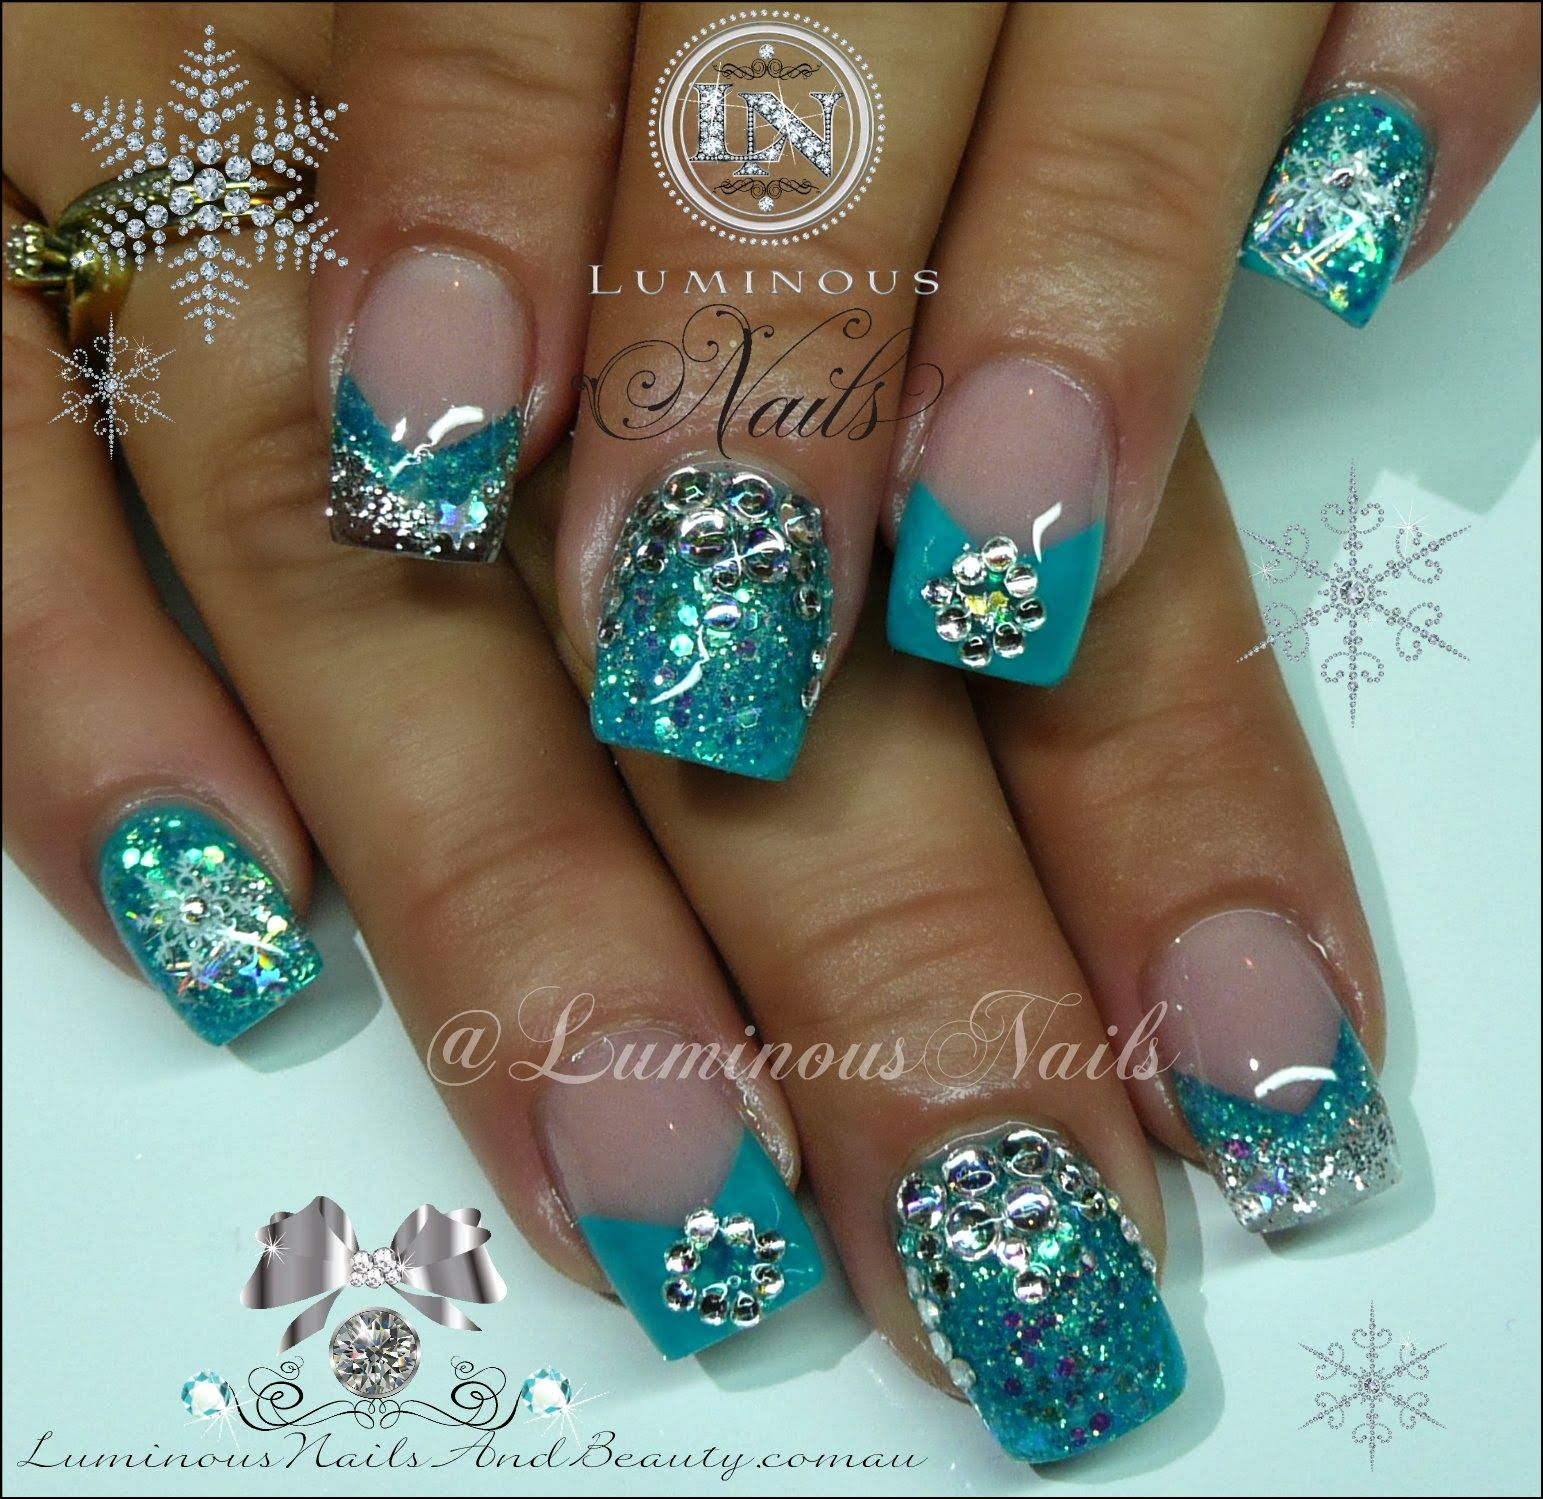 Luminous Nails: Turquoise & Silver Nails with Bling ...